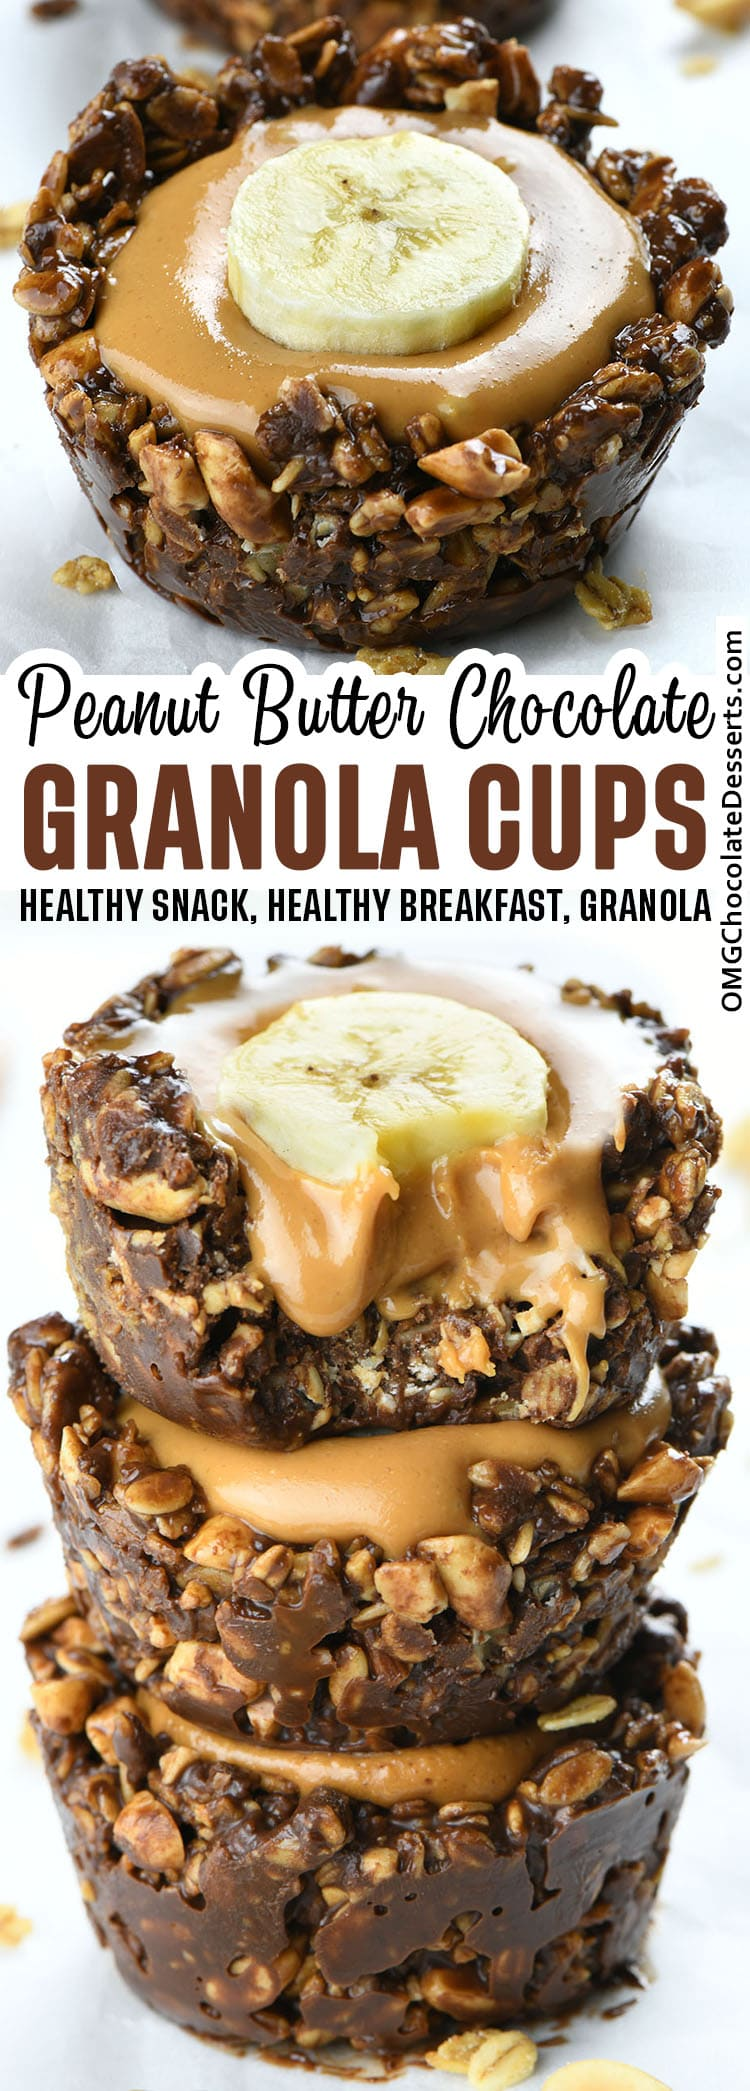 Two images of Chocolate Granola Cups with Peanut Butter Filling.